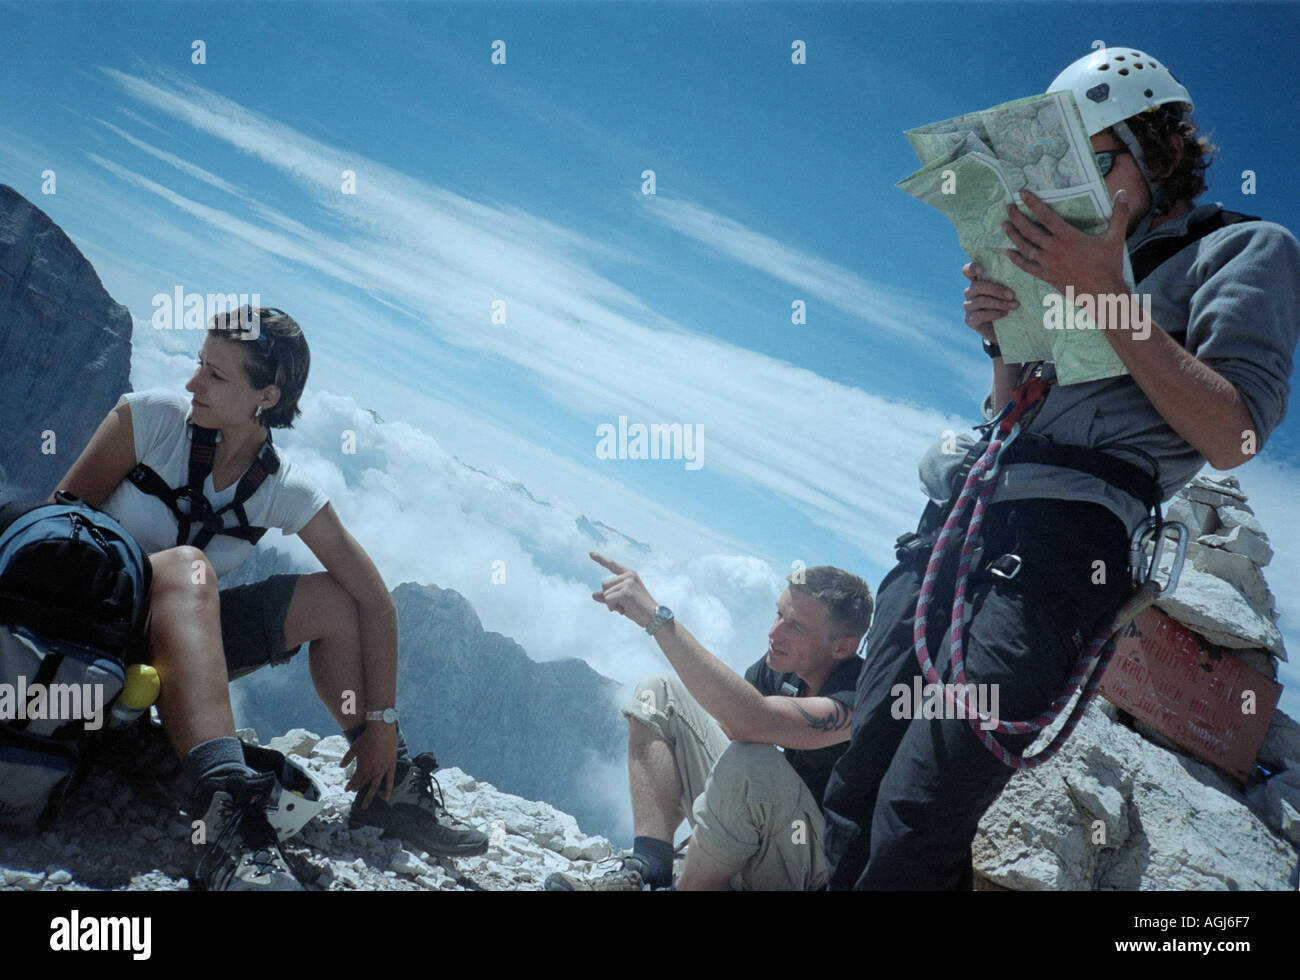 Italy Alps Dolomiti mountains young hikers having a rest after a long climb - Stock Image